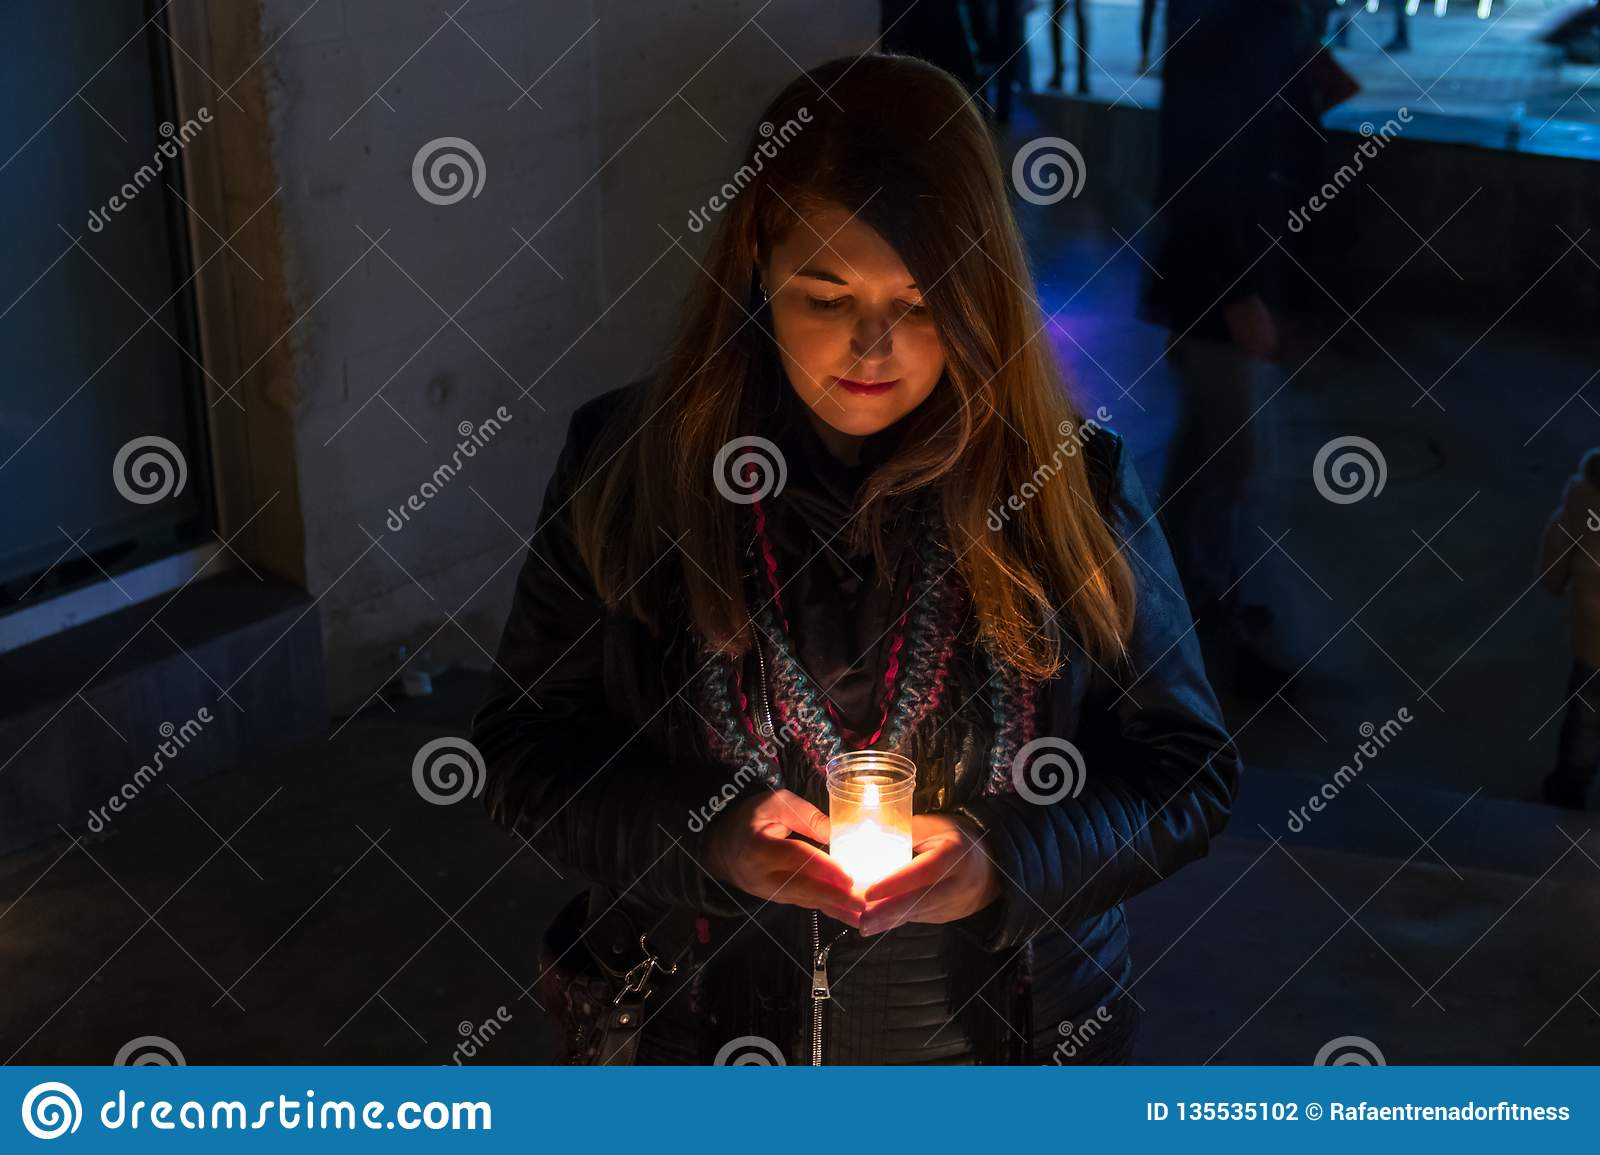 Model with black jacket in night photo with candles